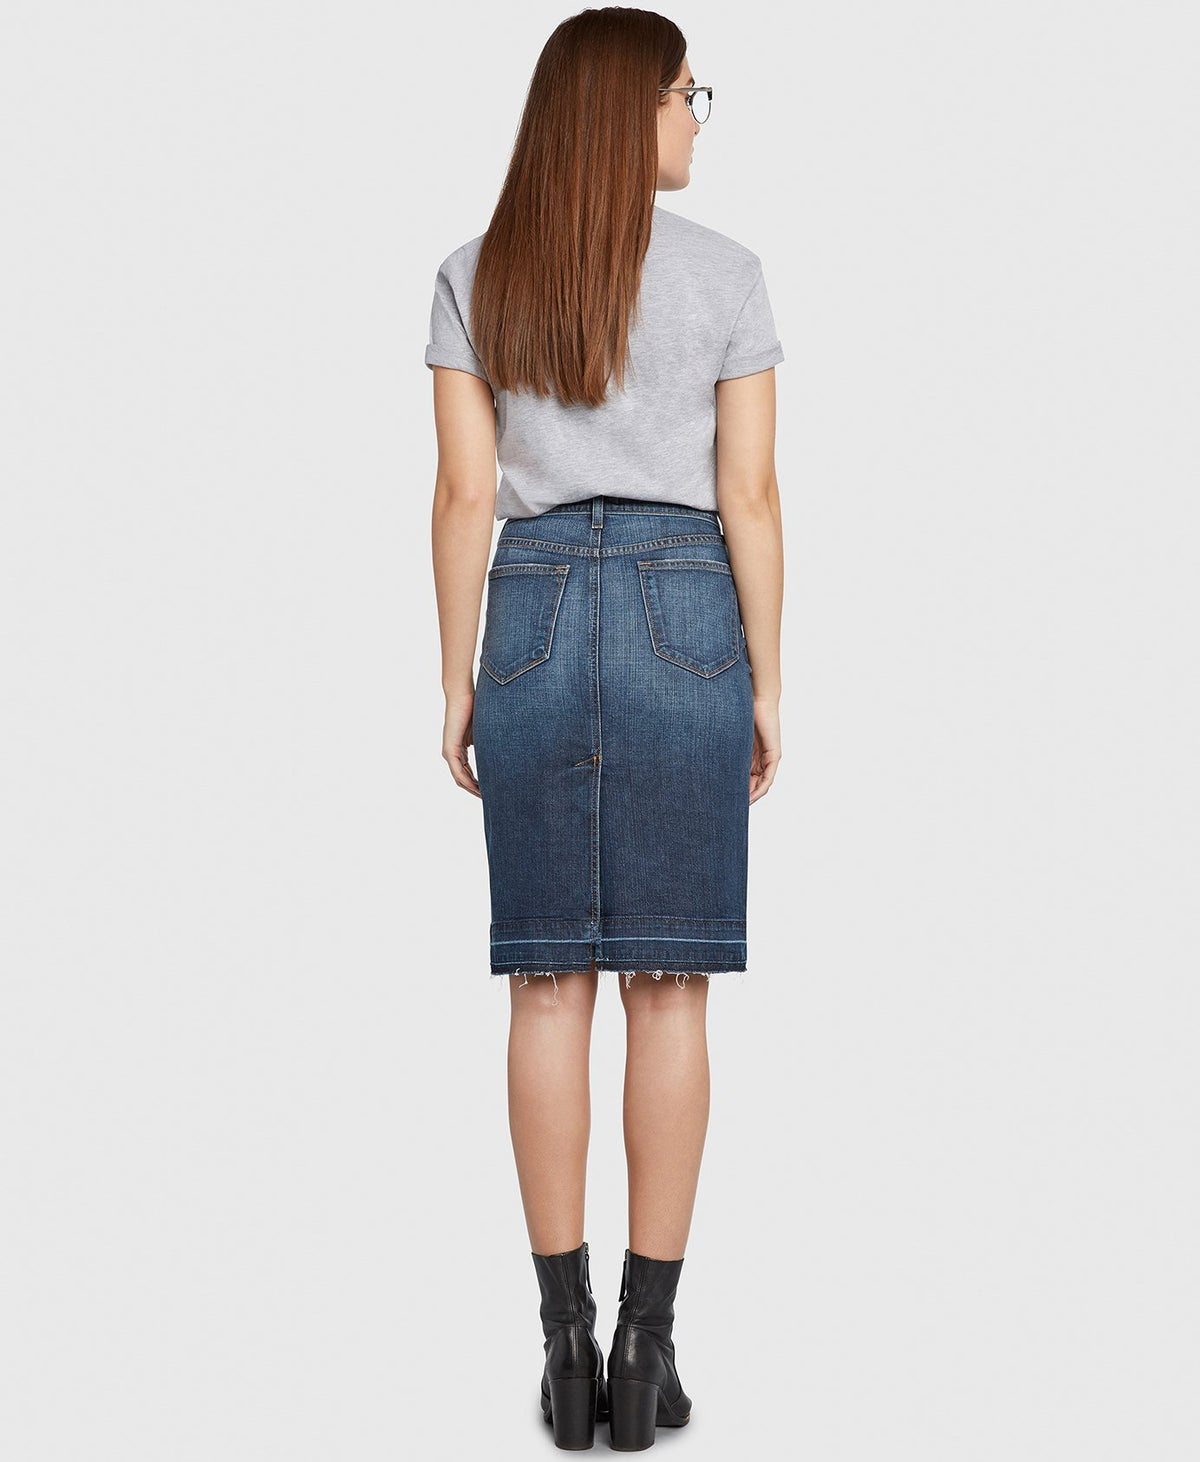 Image of Principle Denim Femme Skirt - Go For Broke wash